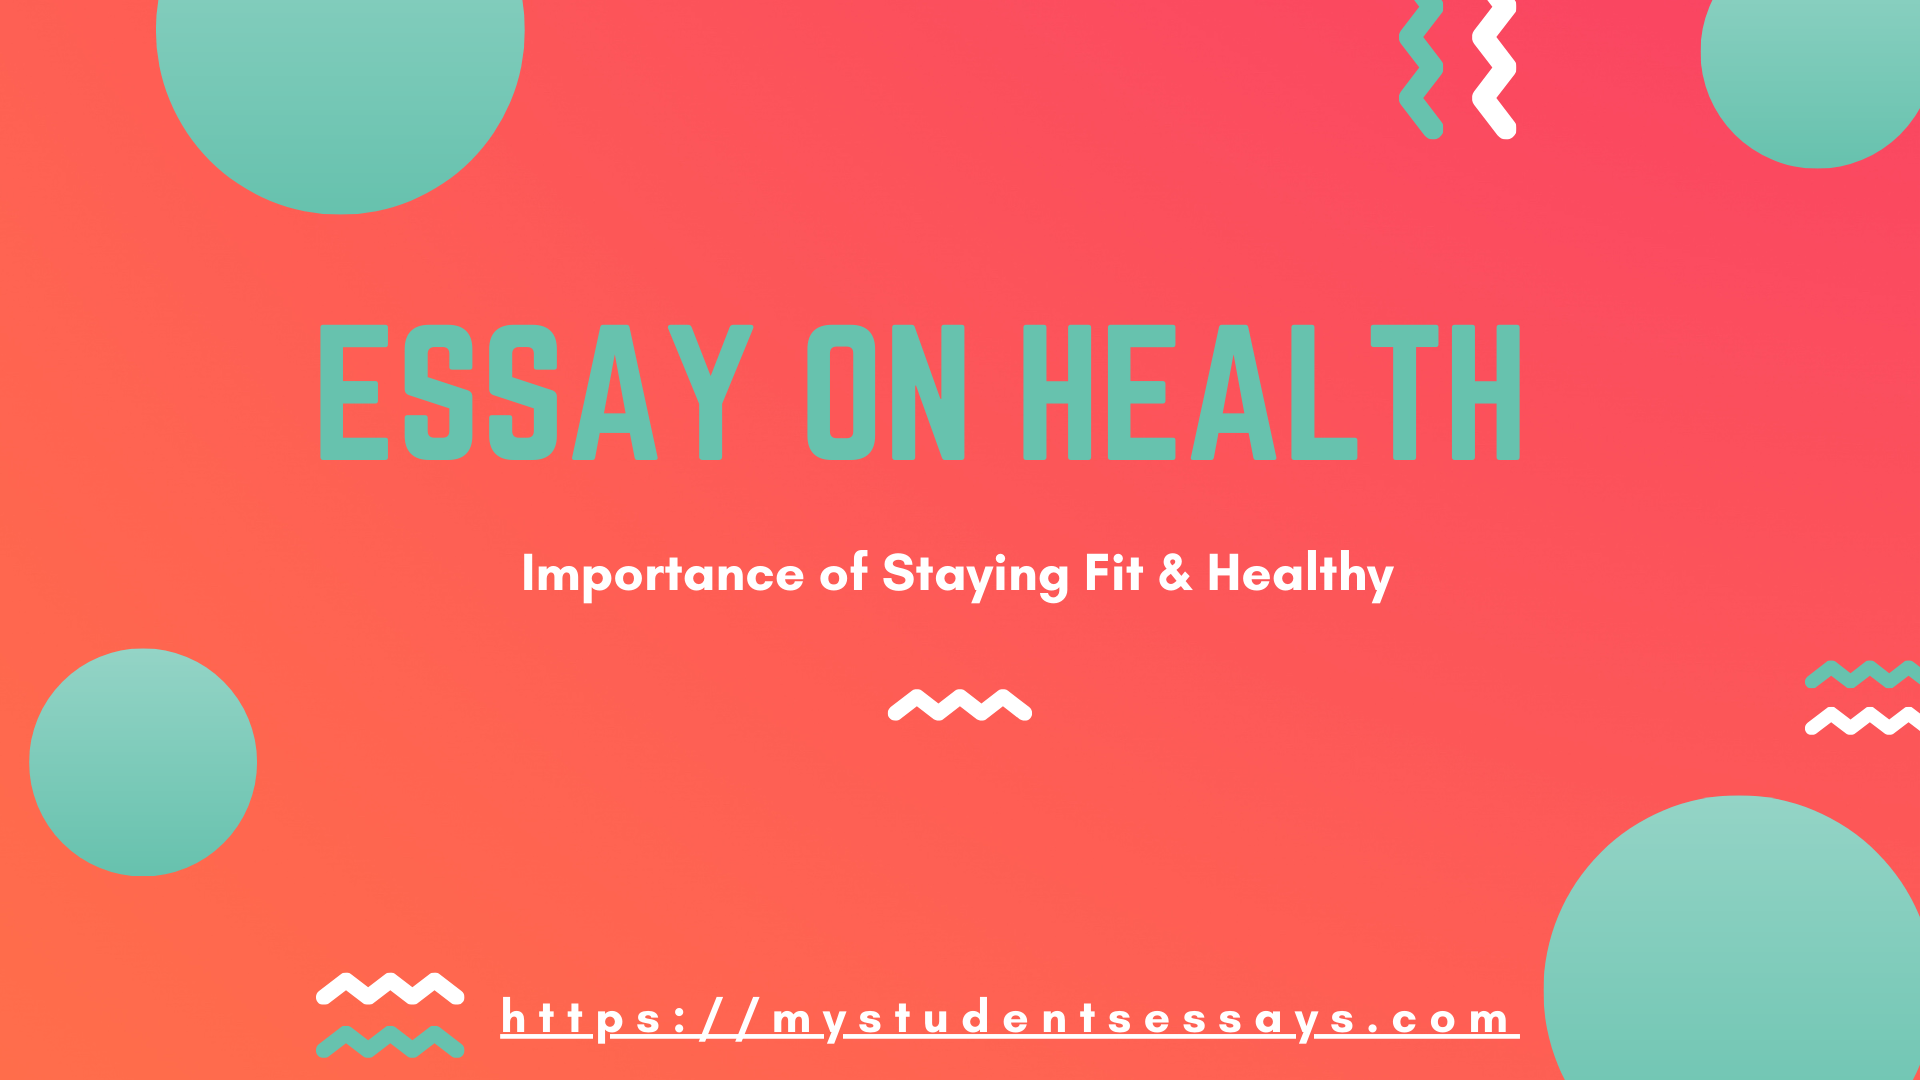 Essay On Health For Students